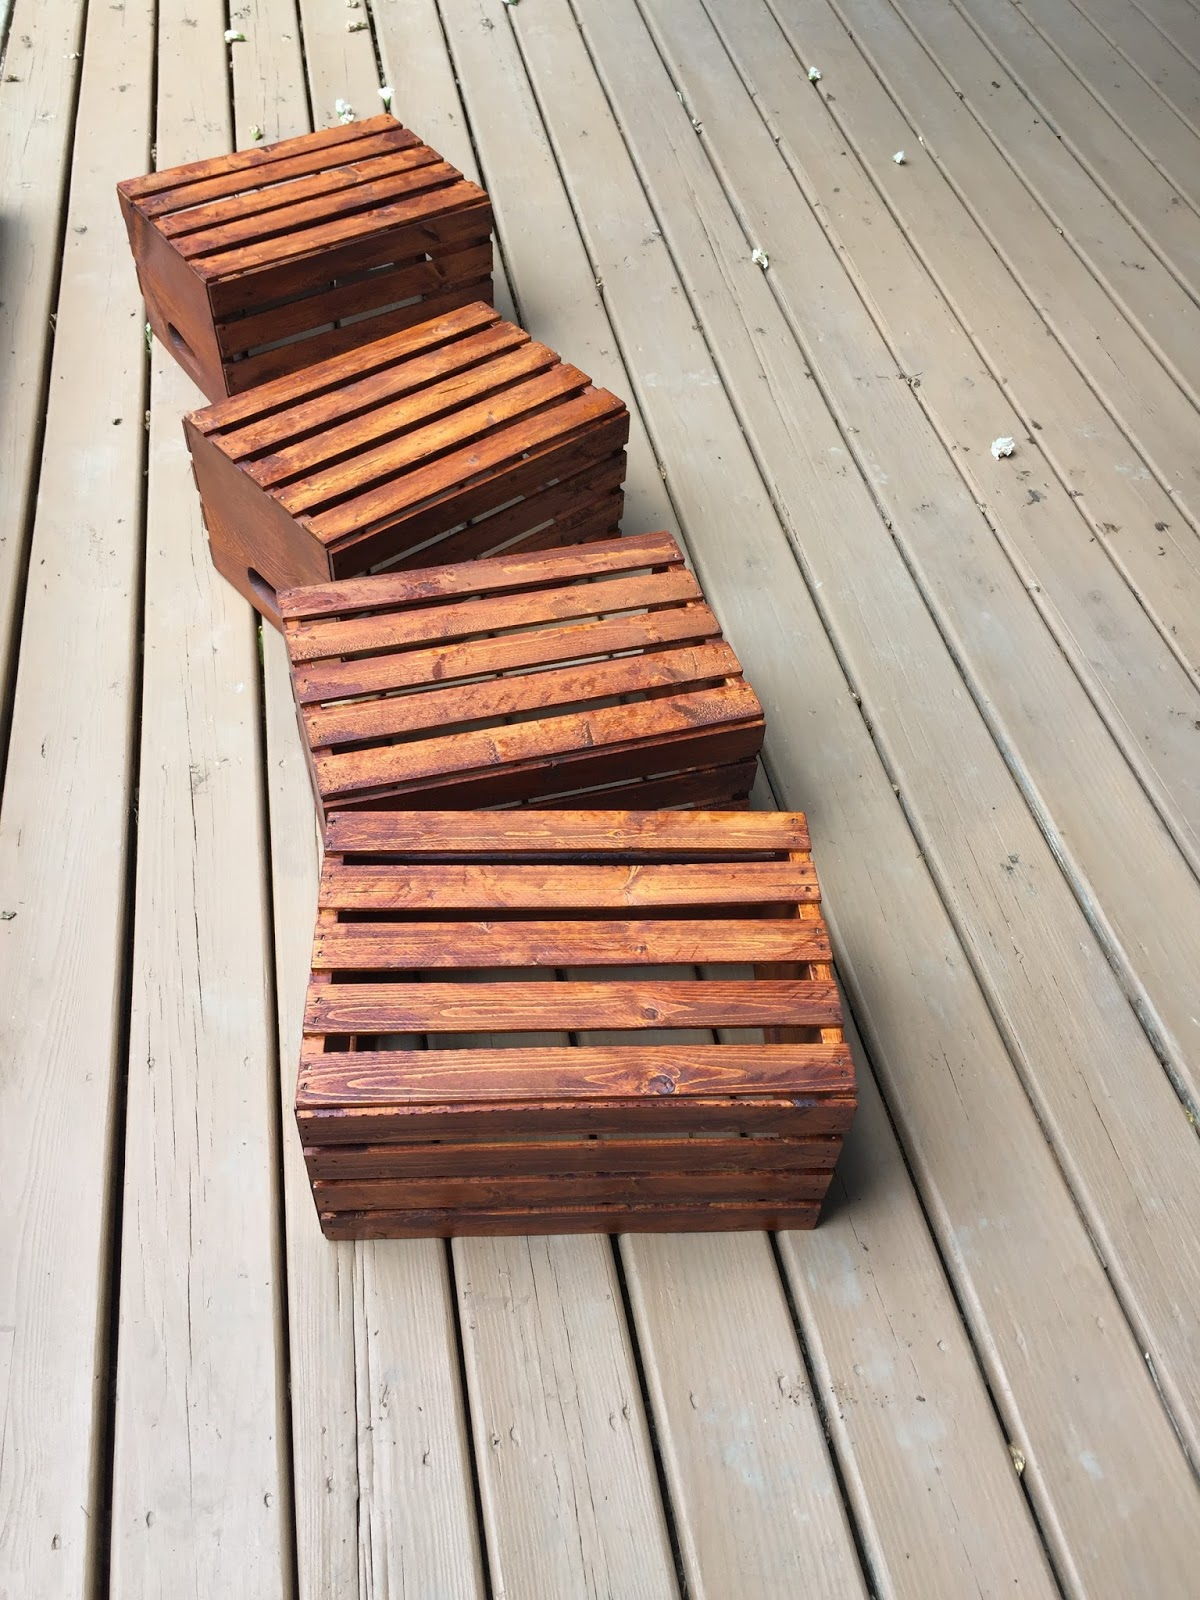 wood bench crate vintage vineyard wooden img